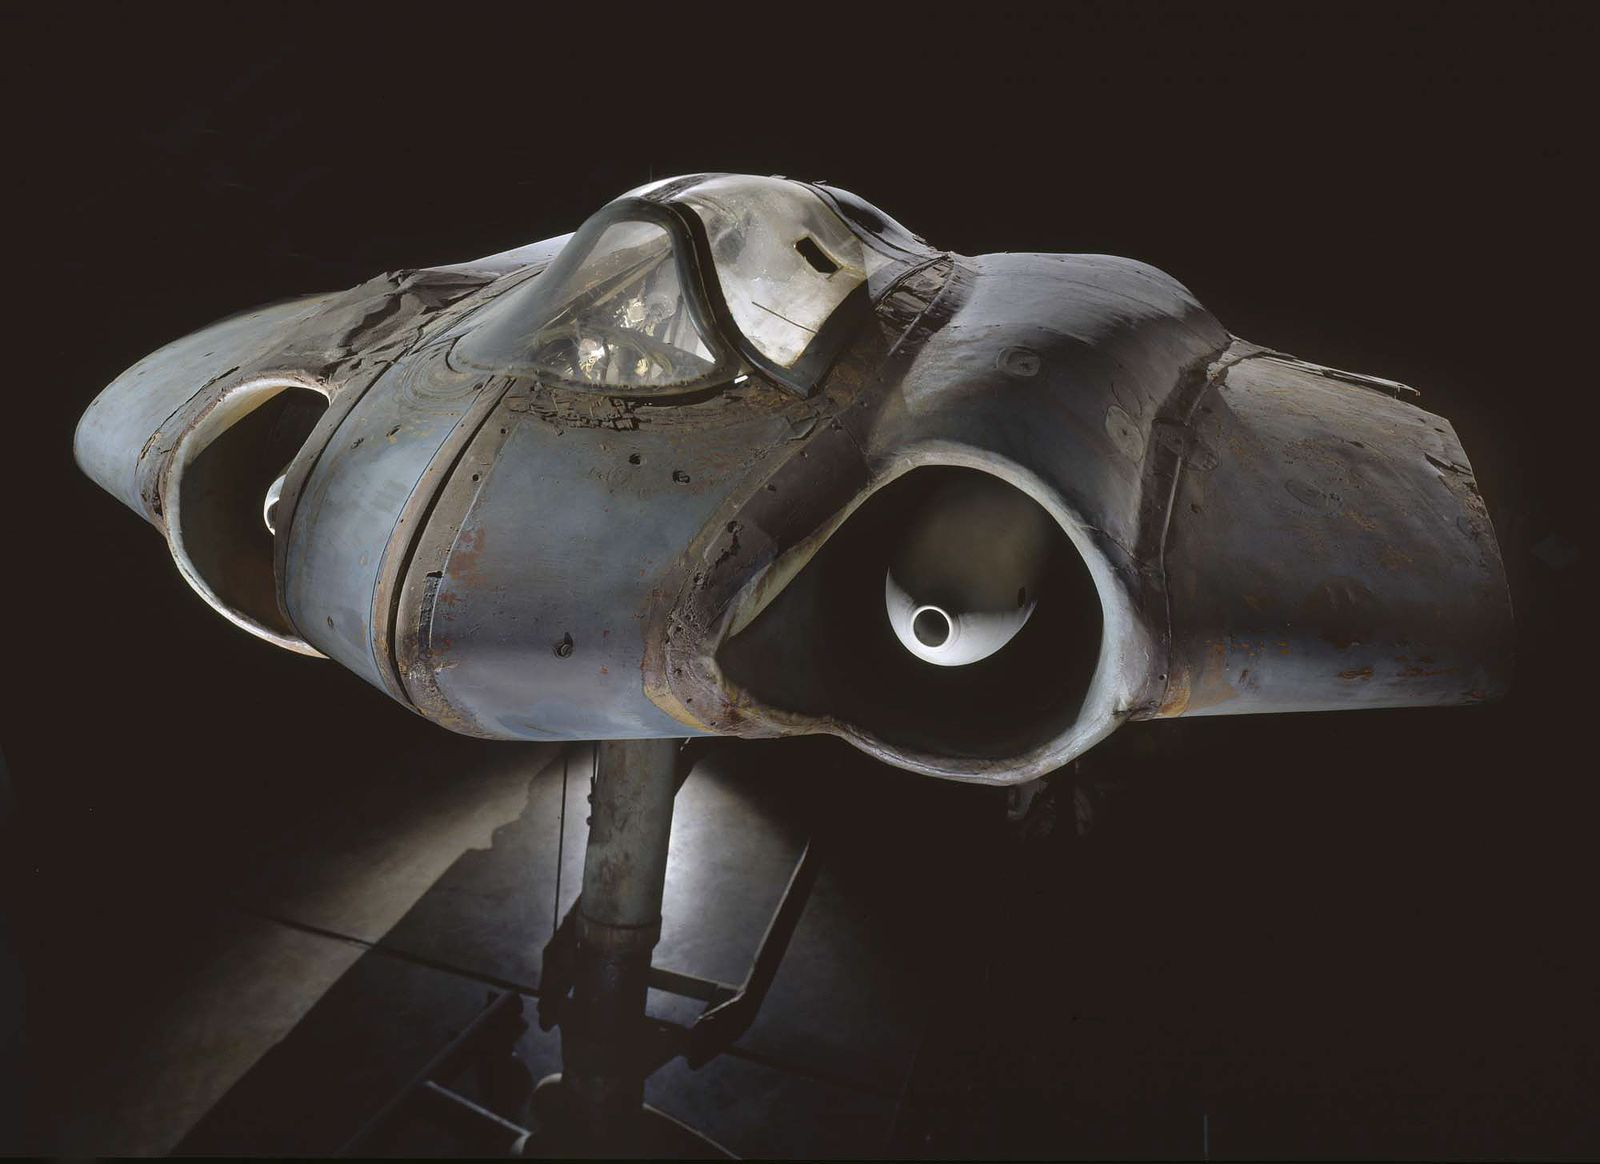 Truth Is Stranger Than Fiction With Horten's All-Wing Aircraft Design